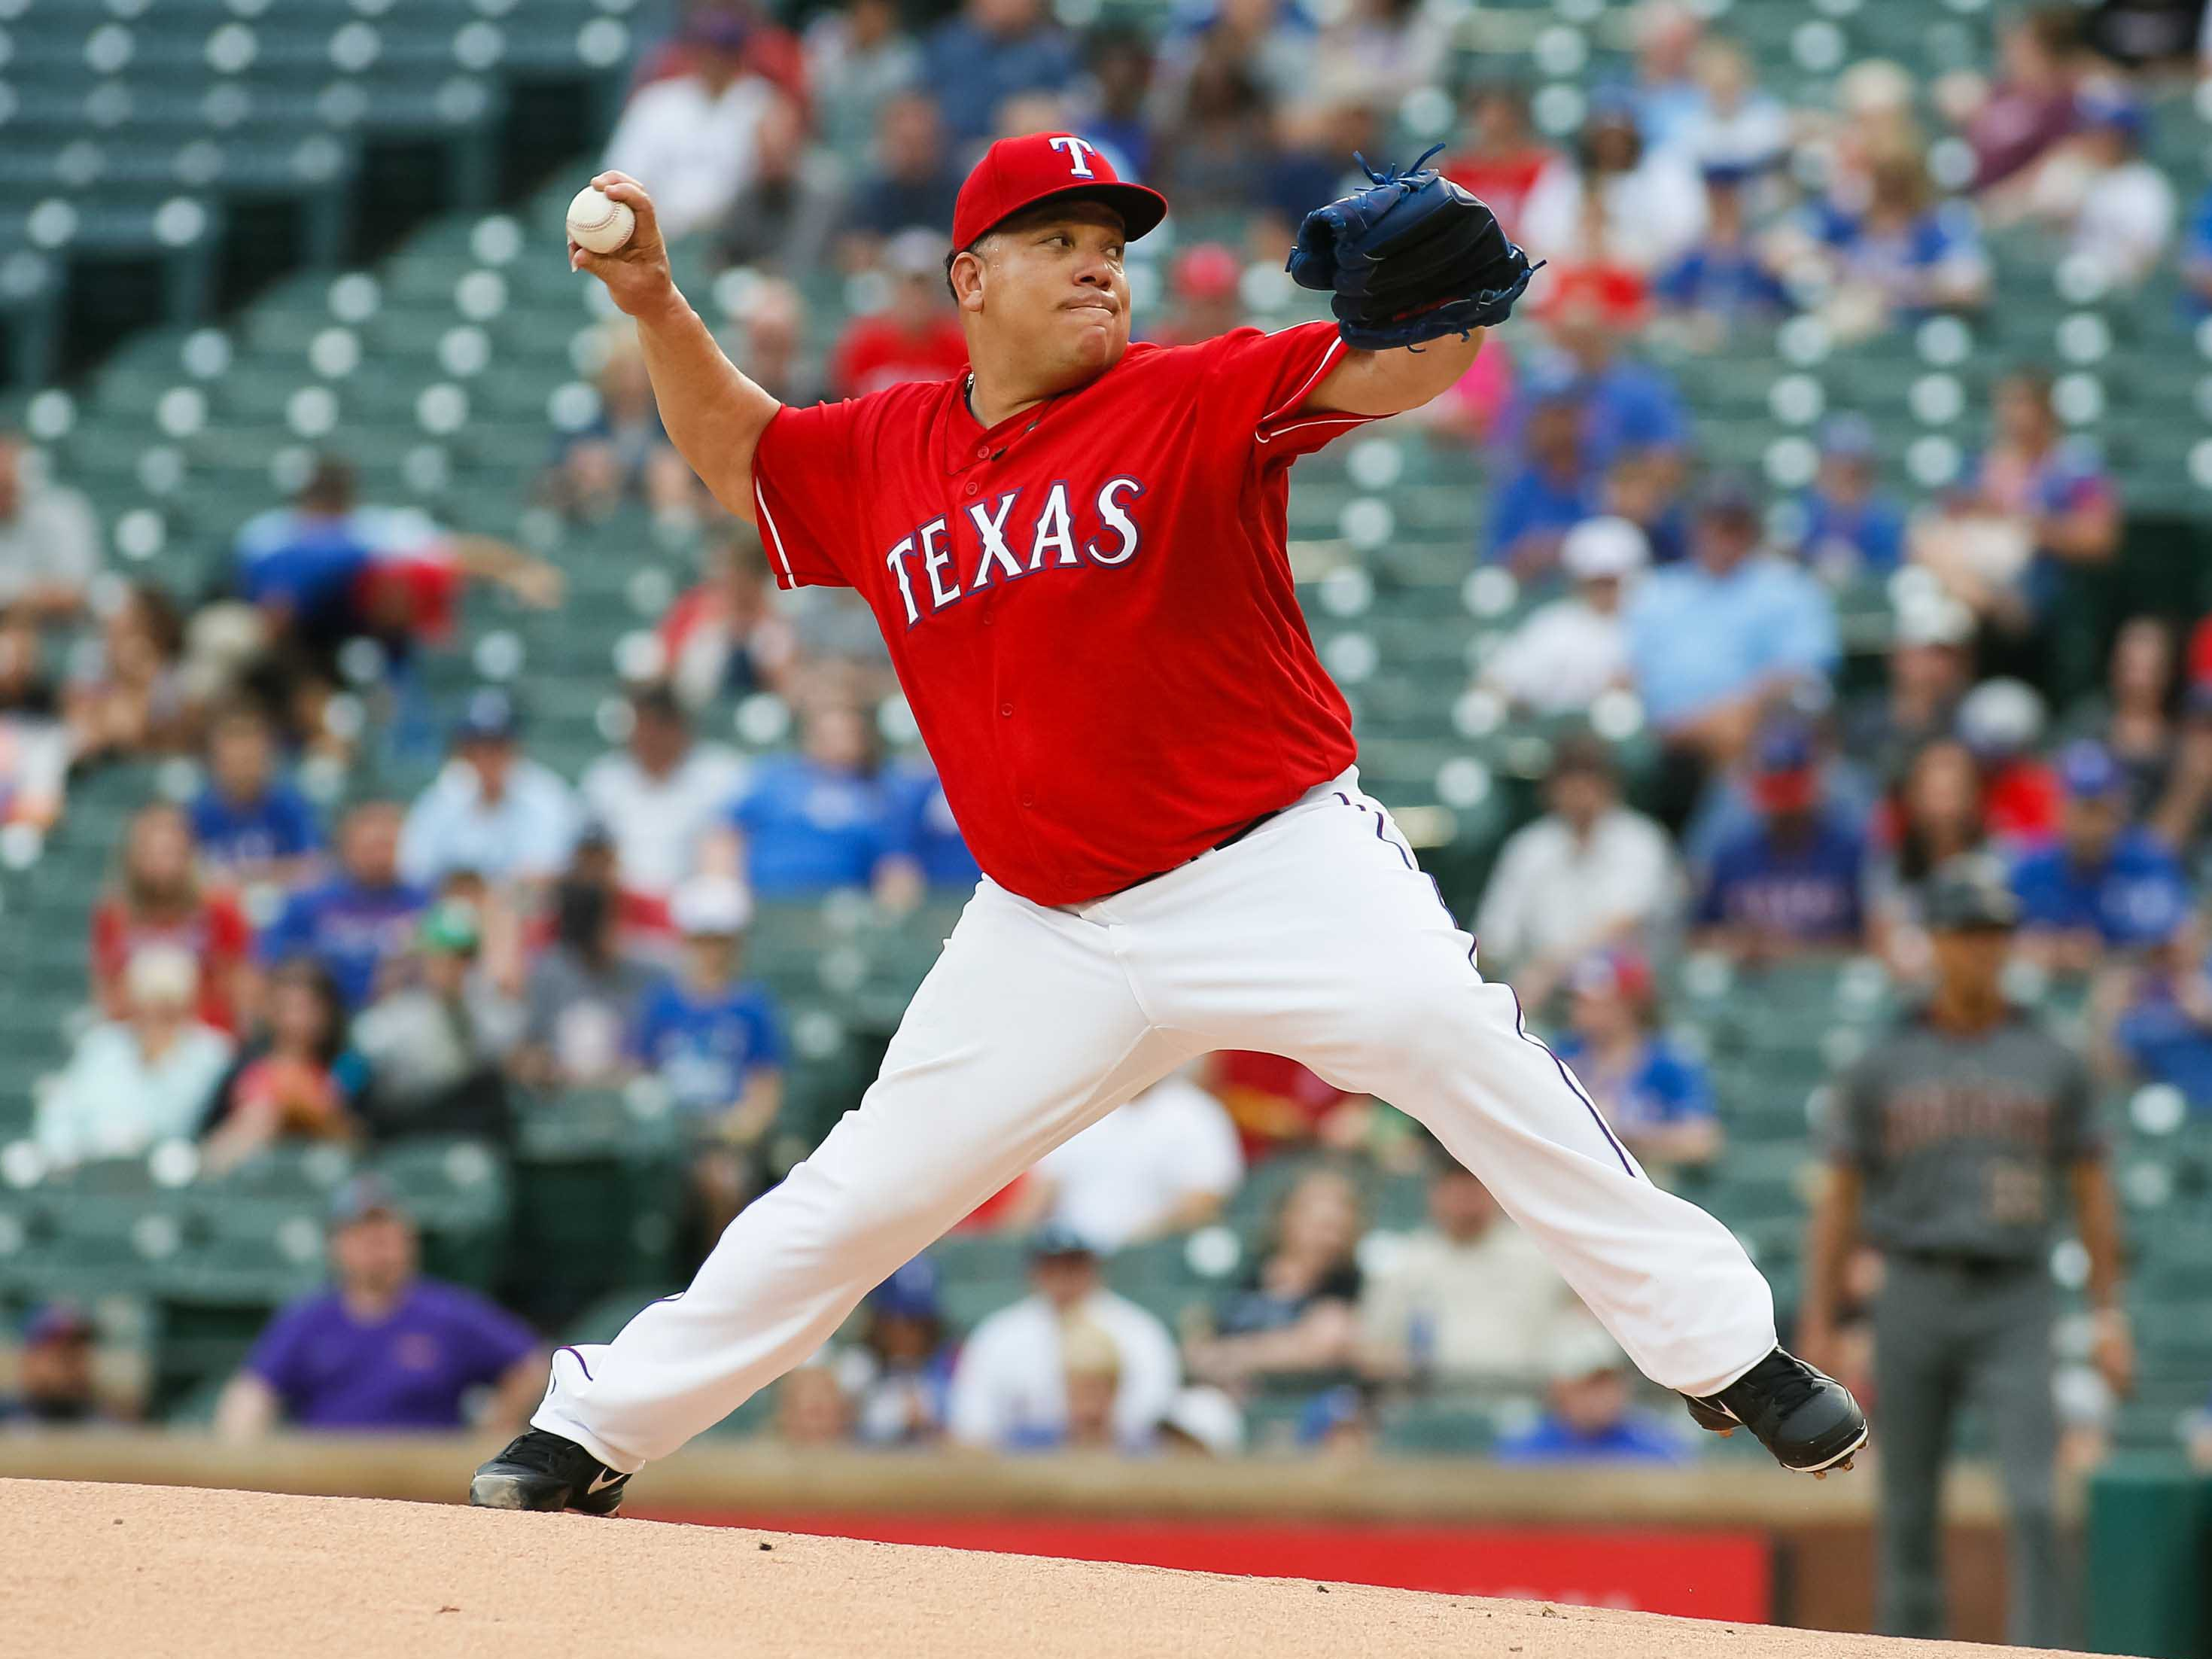 Aug 13, 2018; Arlington, TX, USA; Texas Rangers starting pitcher Bartolo Colon (40) pitches the ball in the first inning against the Arizona Diamondbacks at Globe Life Park in Arlington. Mandatory Credit: Ray Carlin-USA TODAY Sports